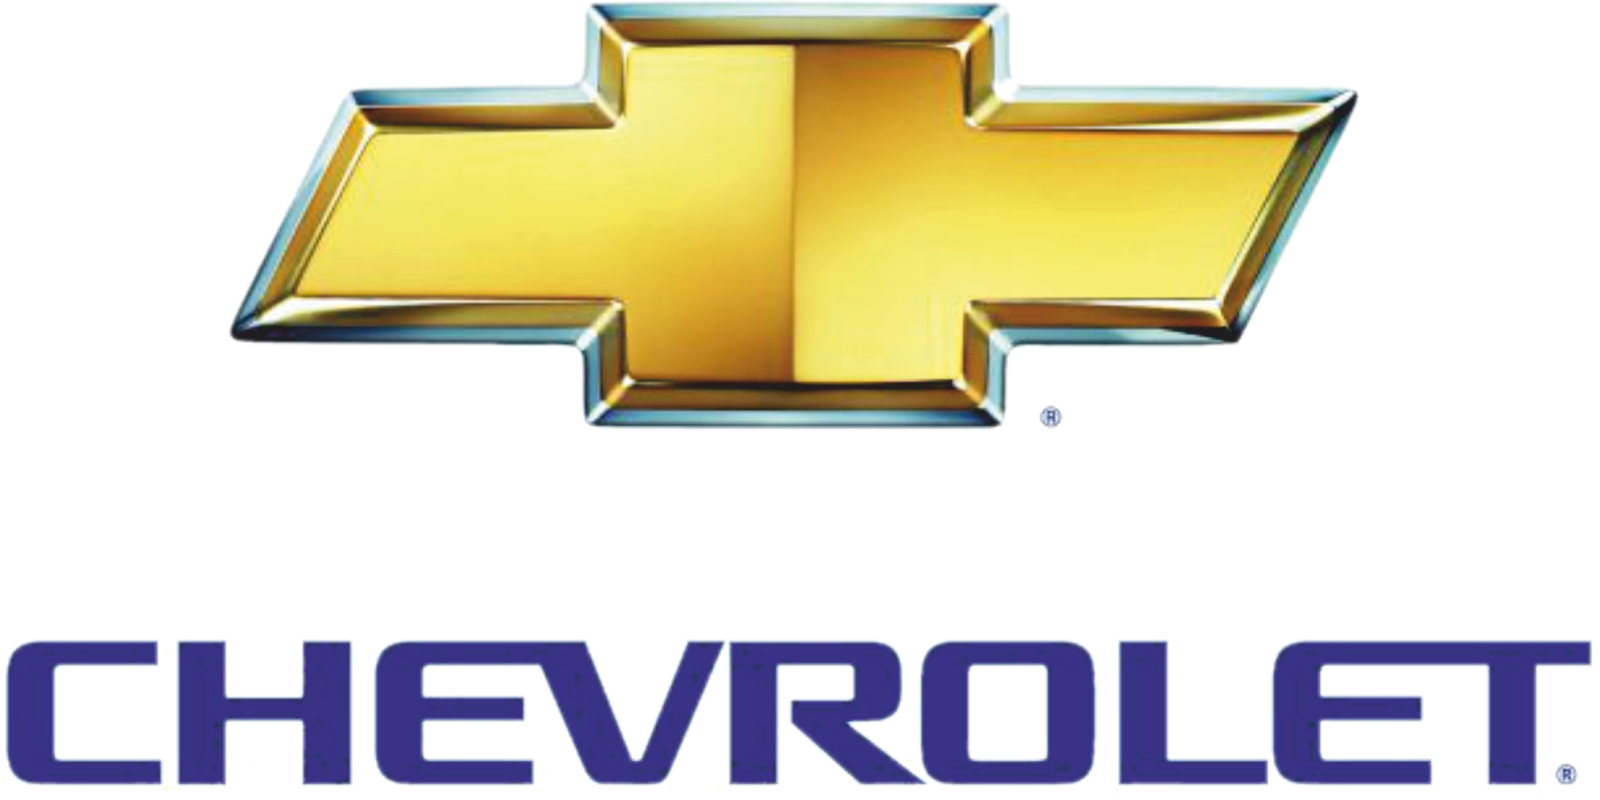 Chevrolet logo png. Image for vector wallpaper